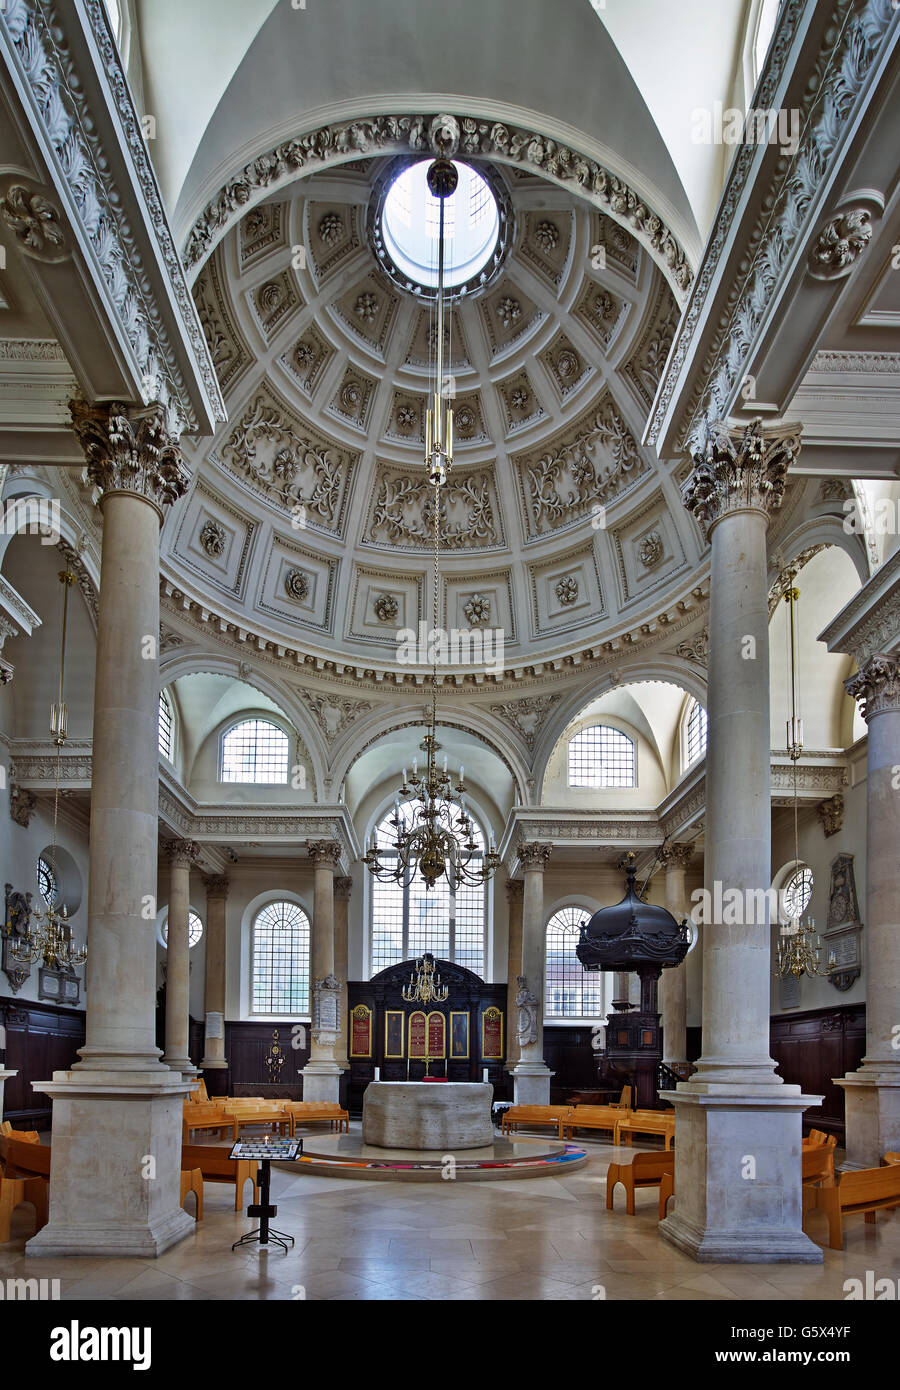 St Stephen Walbrook, Church In The City Of London; Nave And Dome